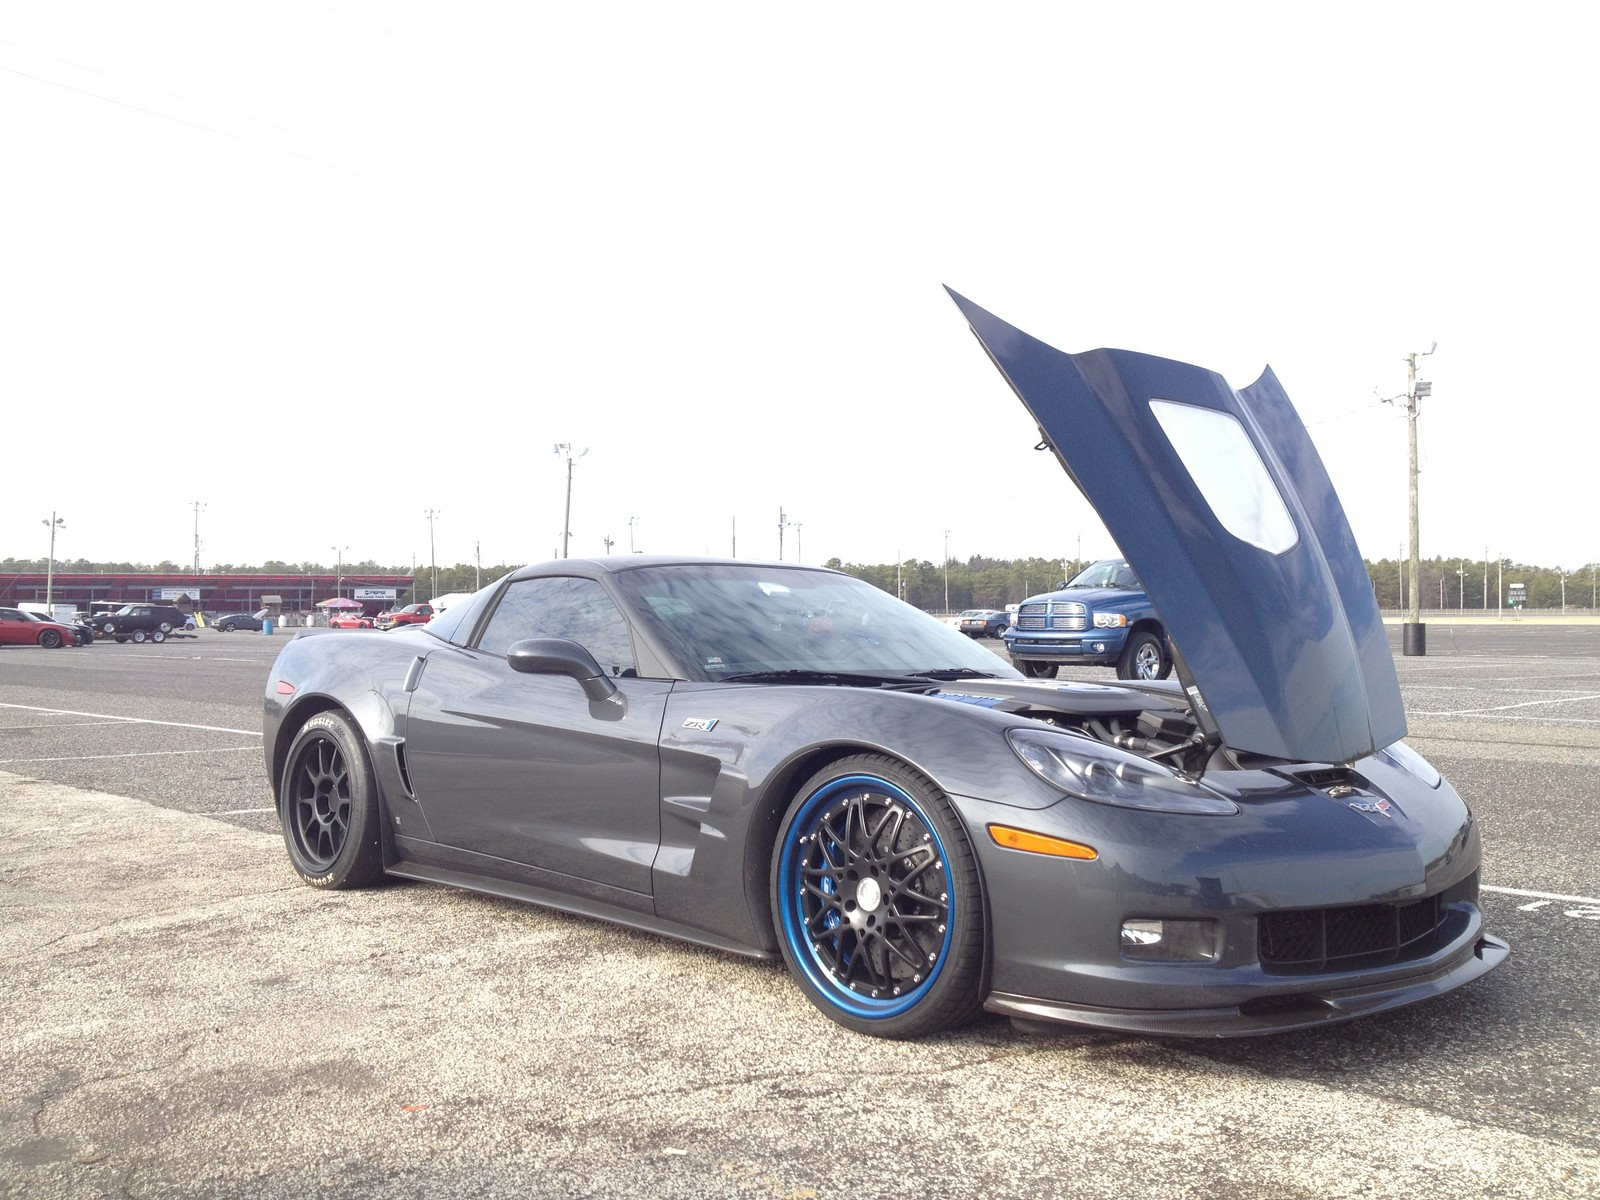 2009 Cyber Grey Chevrolet Corvette ZR1 Header Tune picture, mods, upgrades